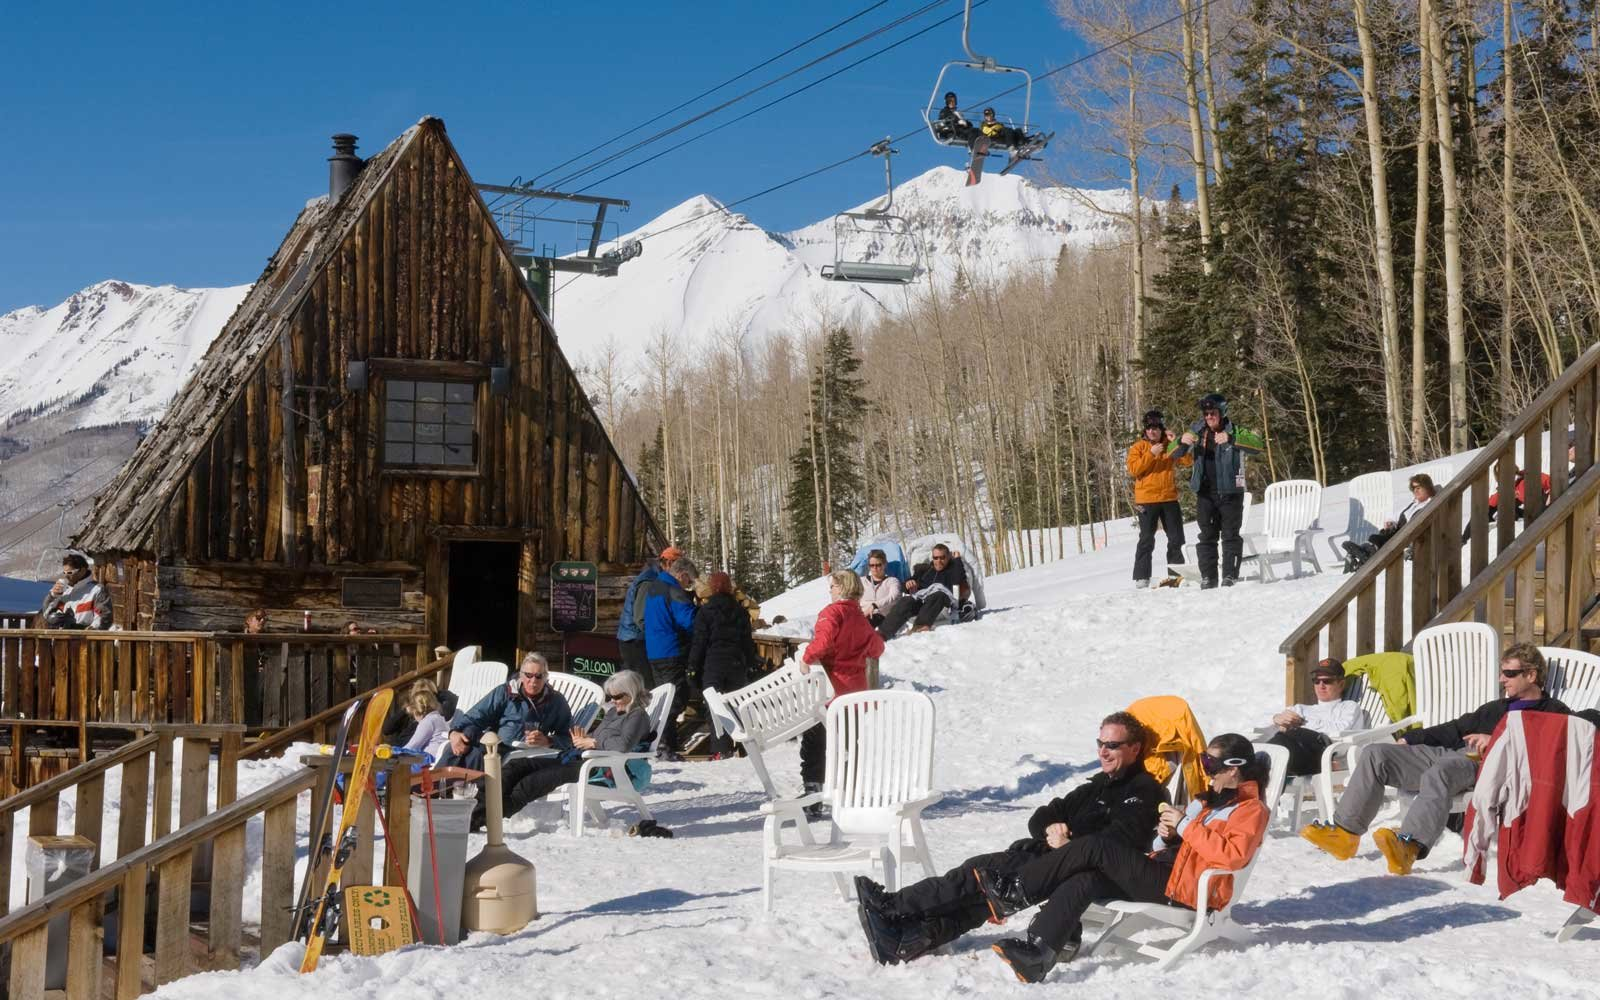 the best colorado ski resorts that aren't aspen or vail | travel +